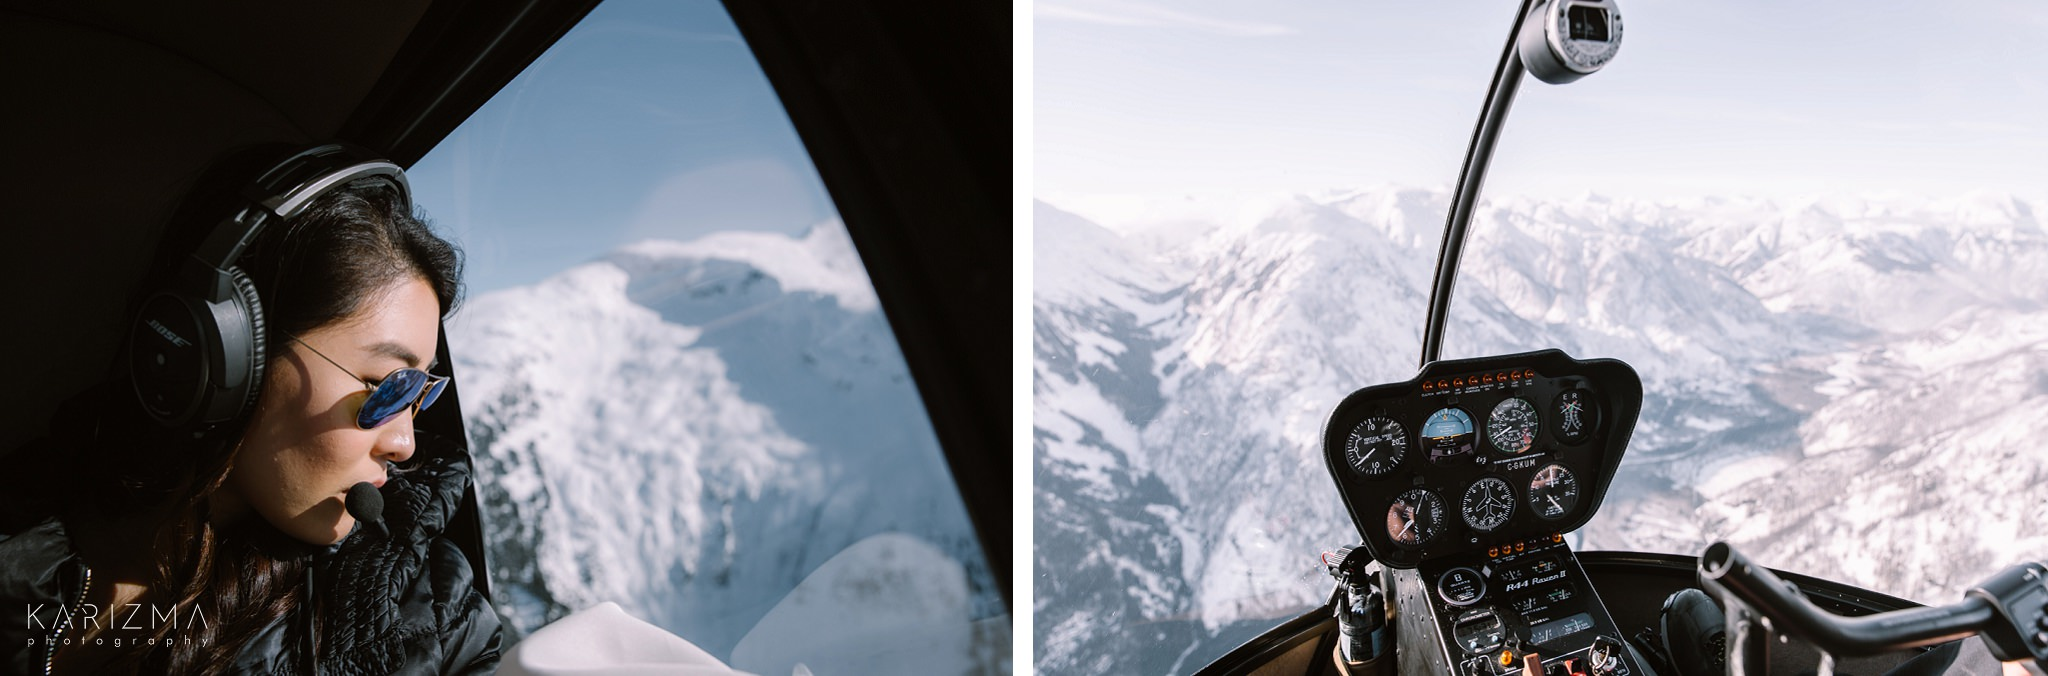 Bride enjoying the view from the helicopter